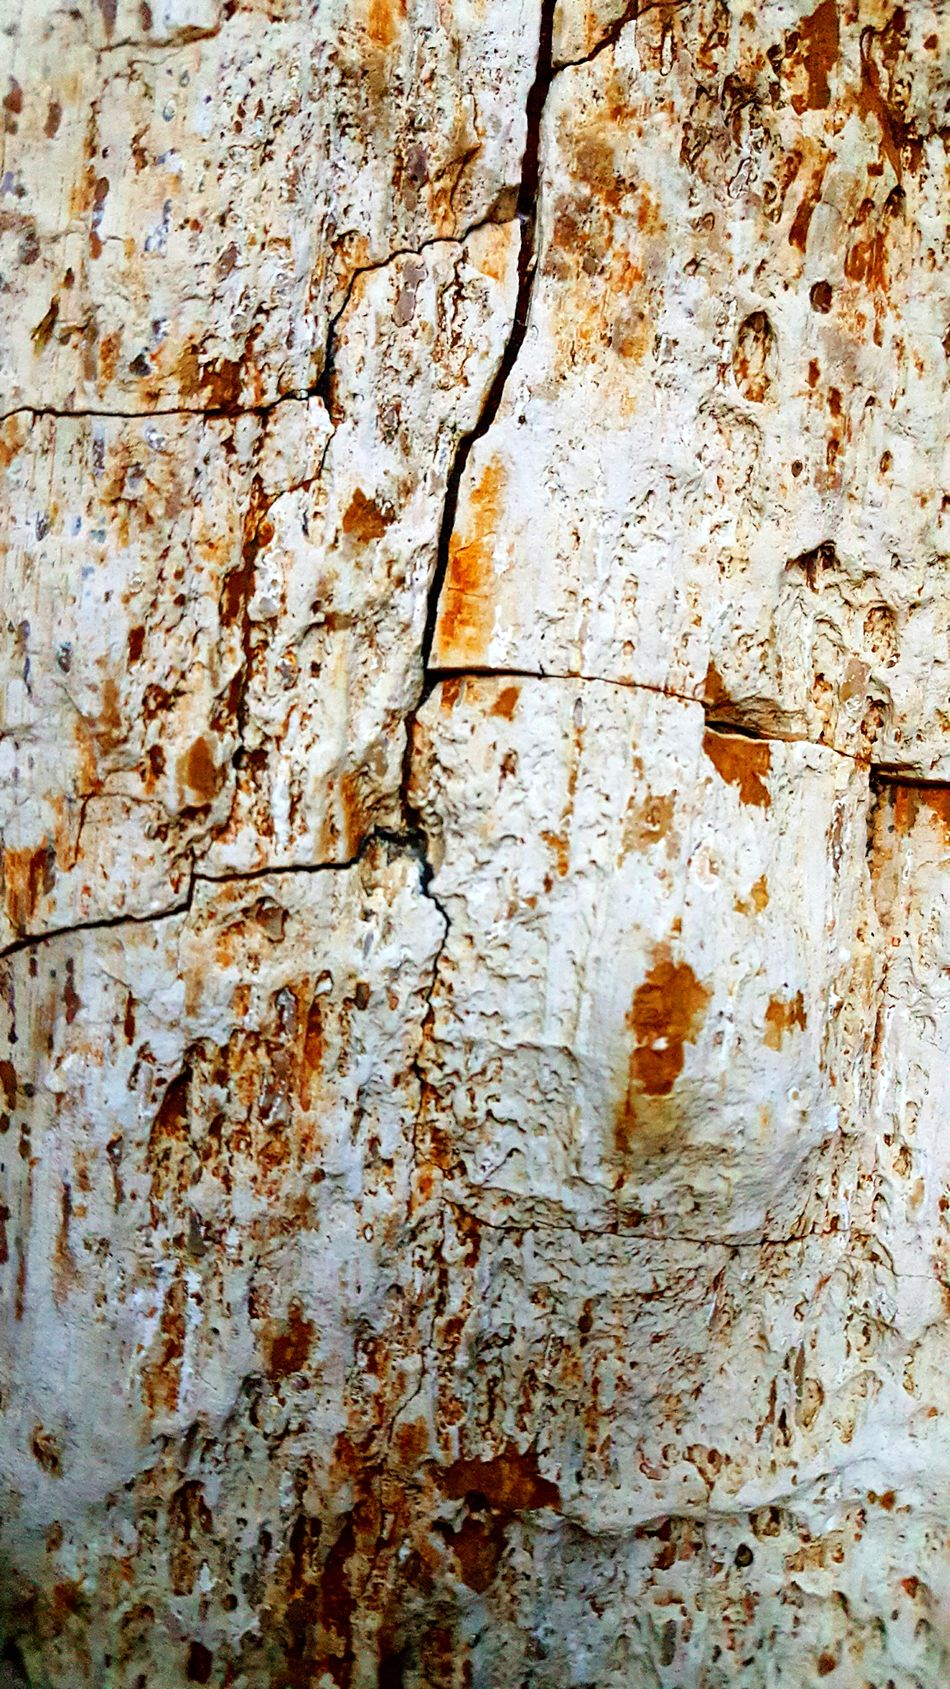 Full Frame Backgrounds Textured  Architecture Weathered Built Structure Close-up Wall - Building Feature Deterioration Damaged Peeling No People Stone Material Rugged Weathered Beauty In Nature Rock Nature Textured  Outdoors